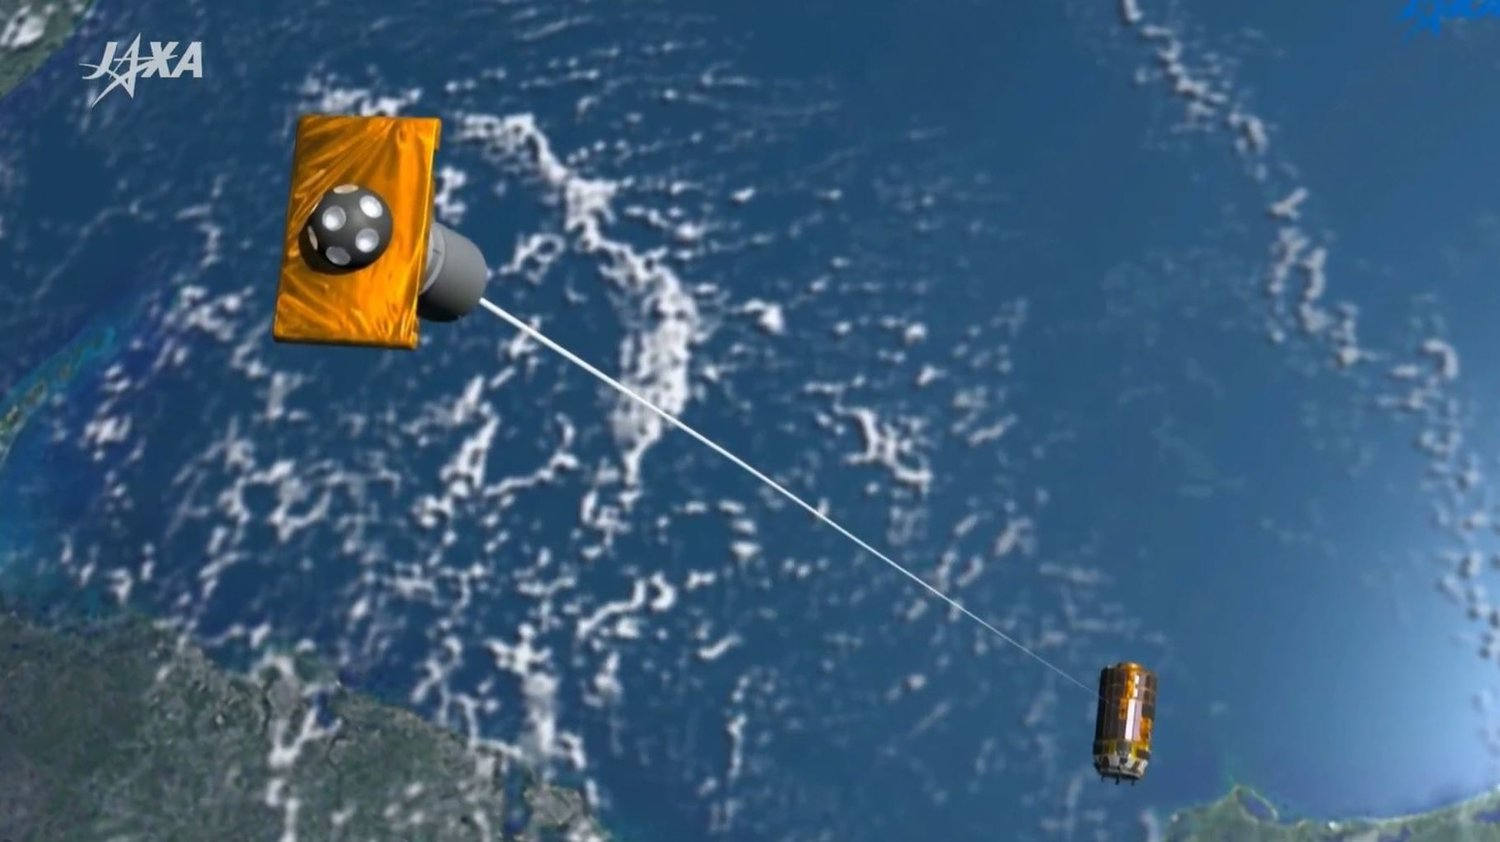 Japan's high-tech space junk collector might already be broken